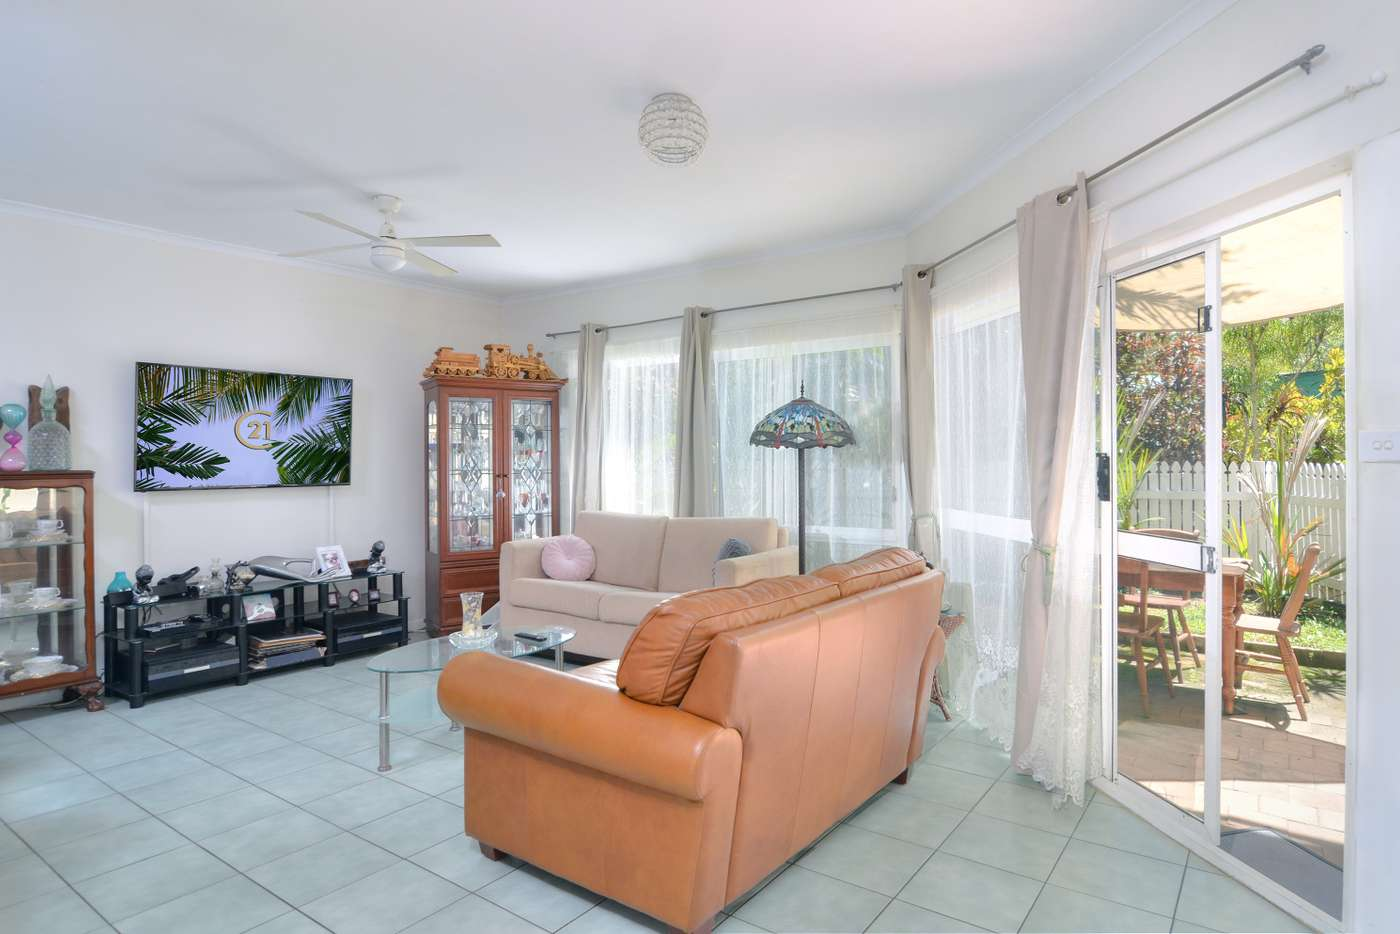 Main view of Homely apartment listing, 5/11 Tropic Court, Port Douglas QLD 4877